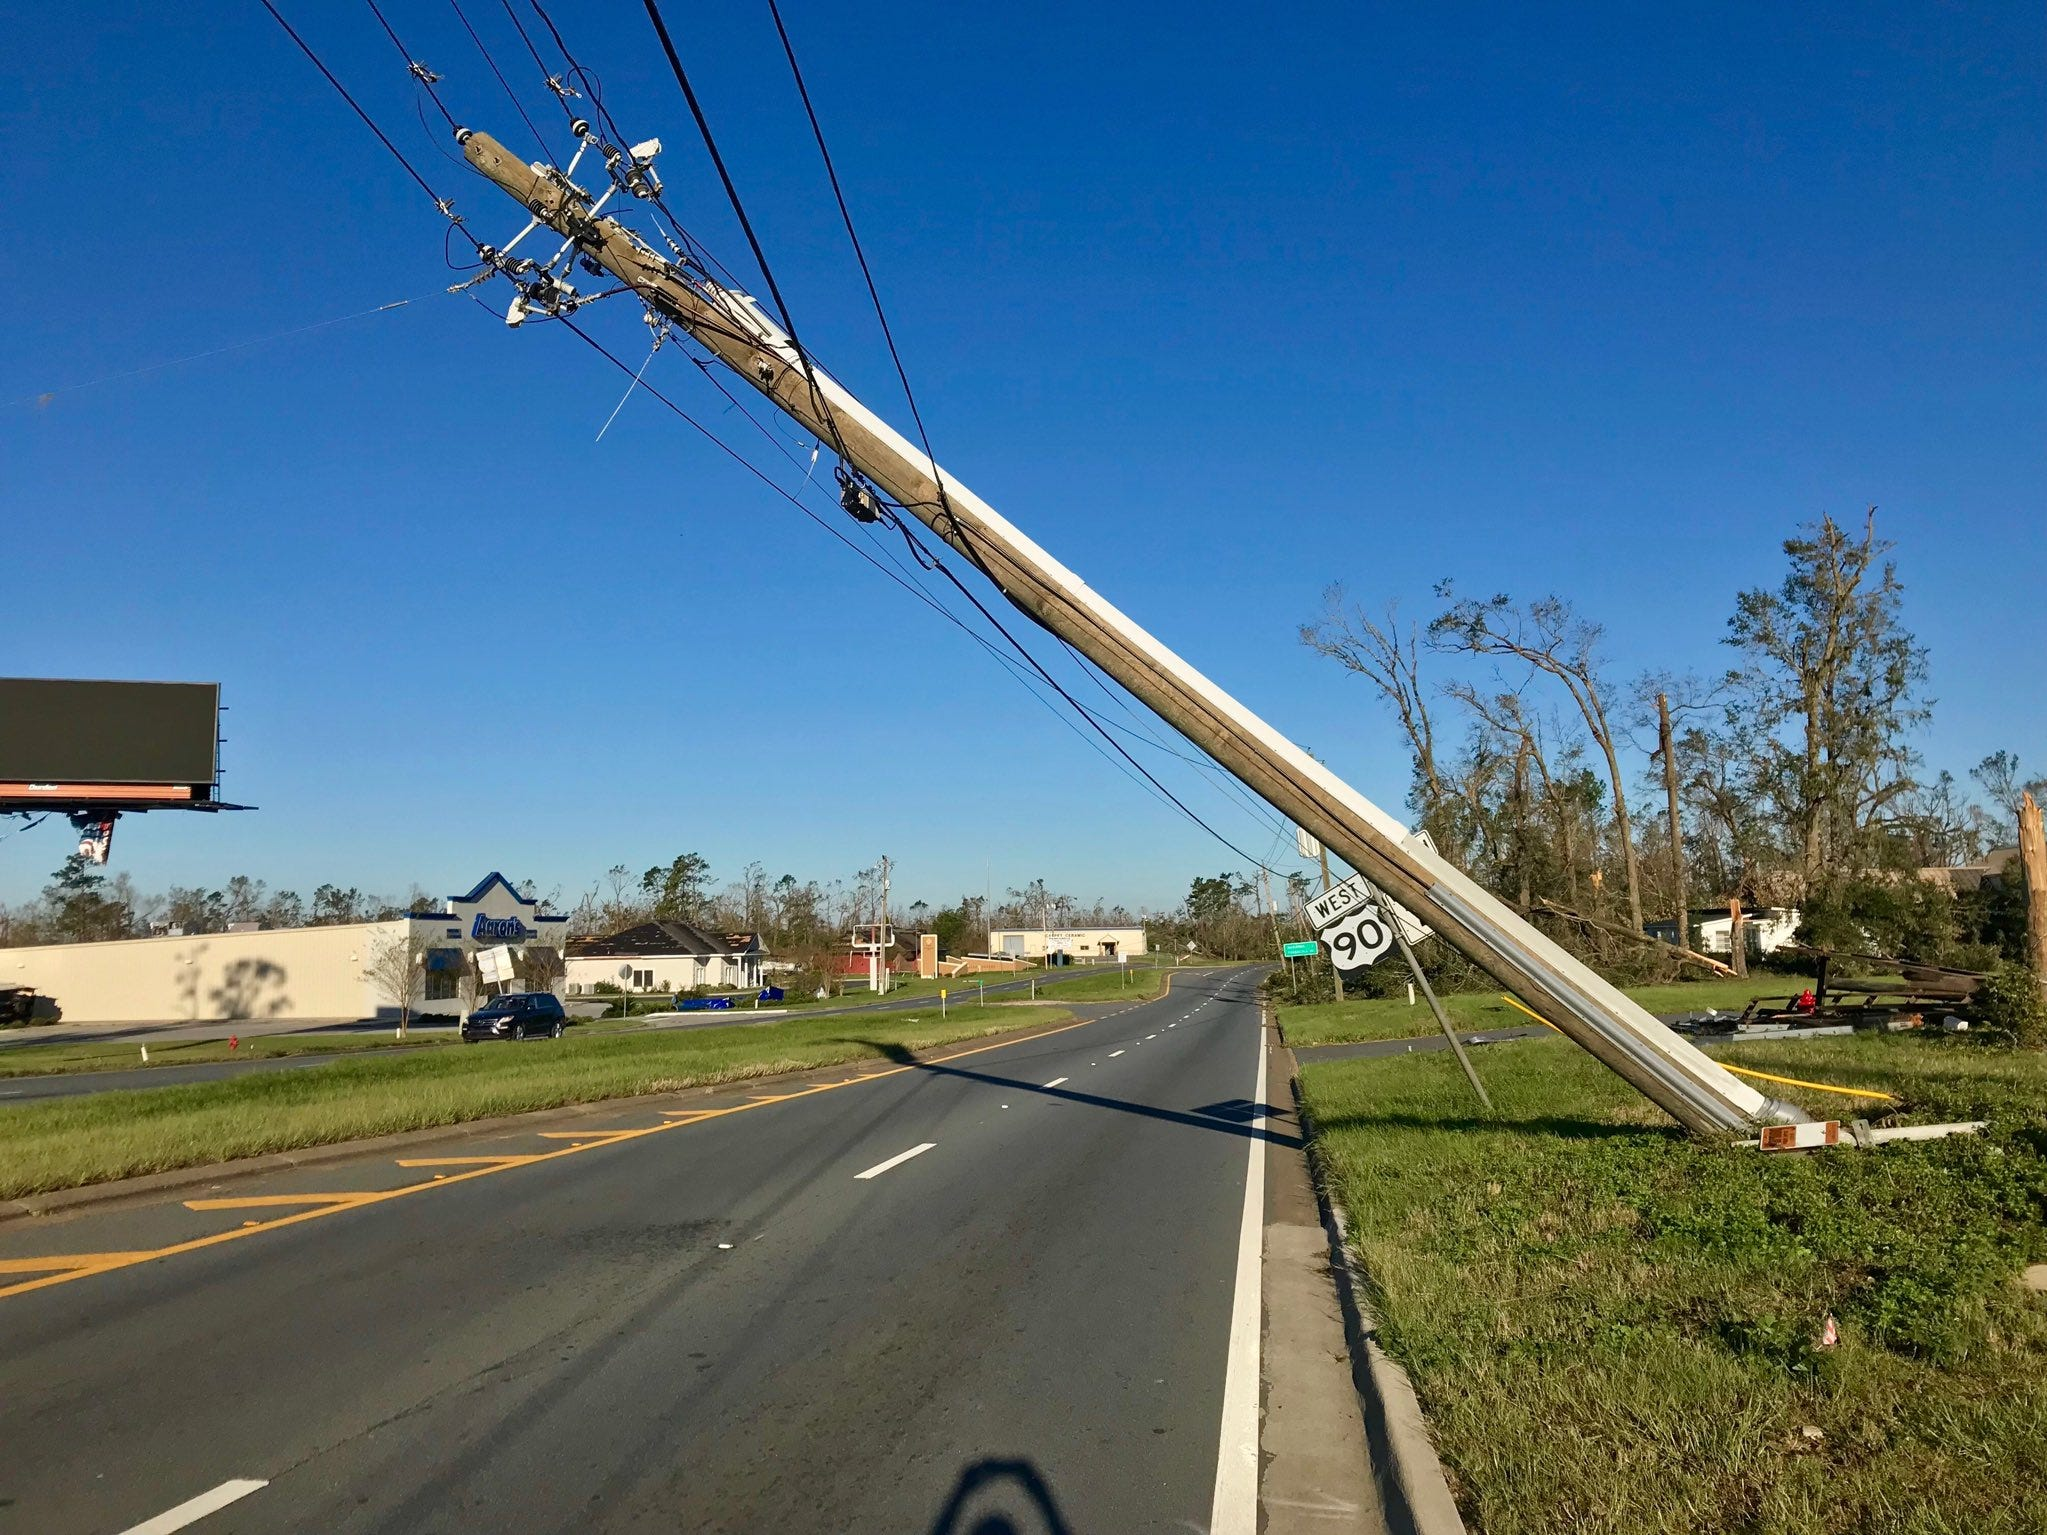 Power poles and lines are down everywhere in Marianna. Traffic lights are out and trees are blocking lanes of major roads.